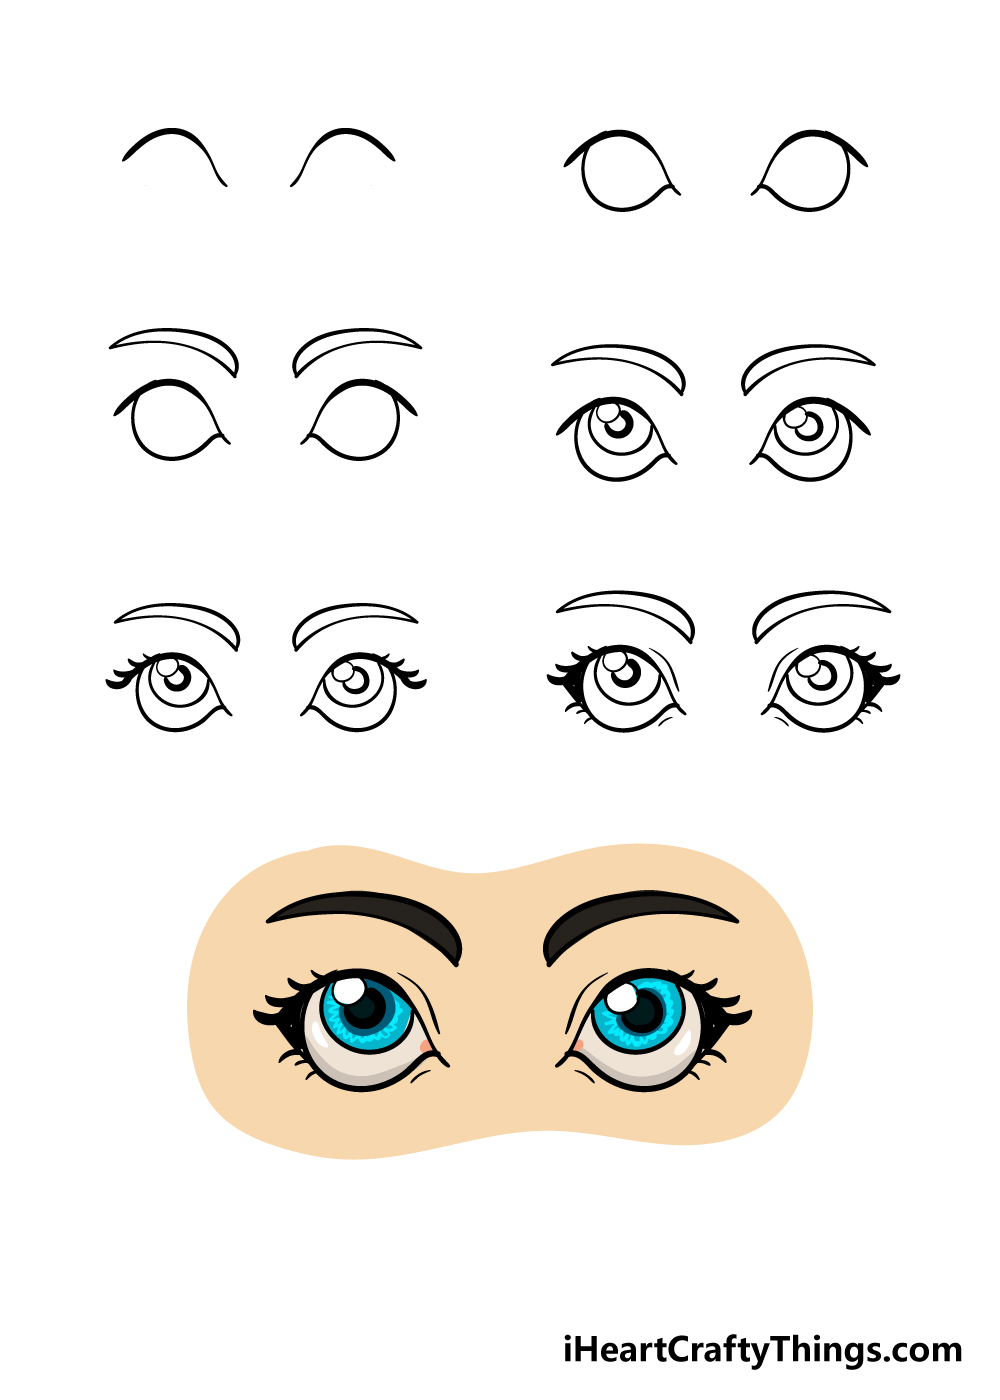 how to draw eyes in 7 steps